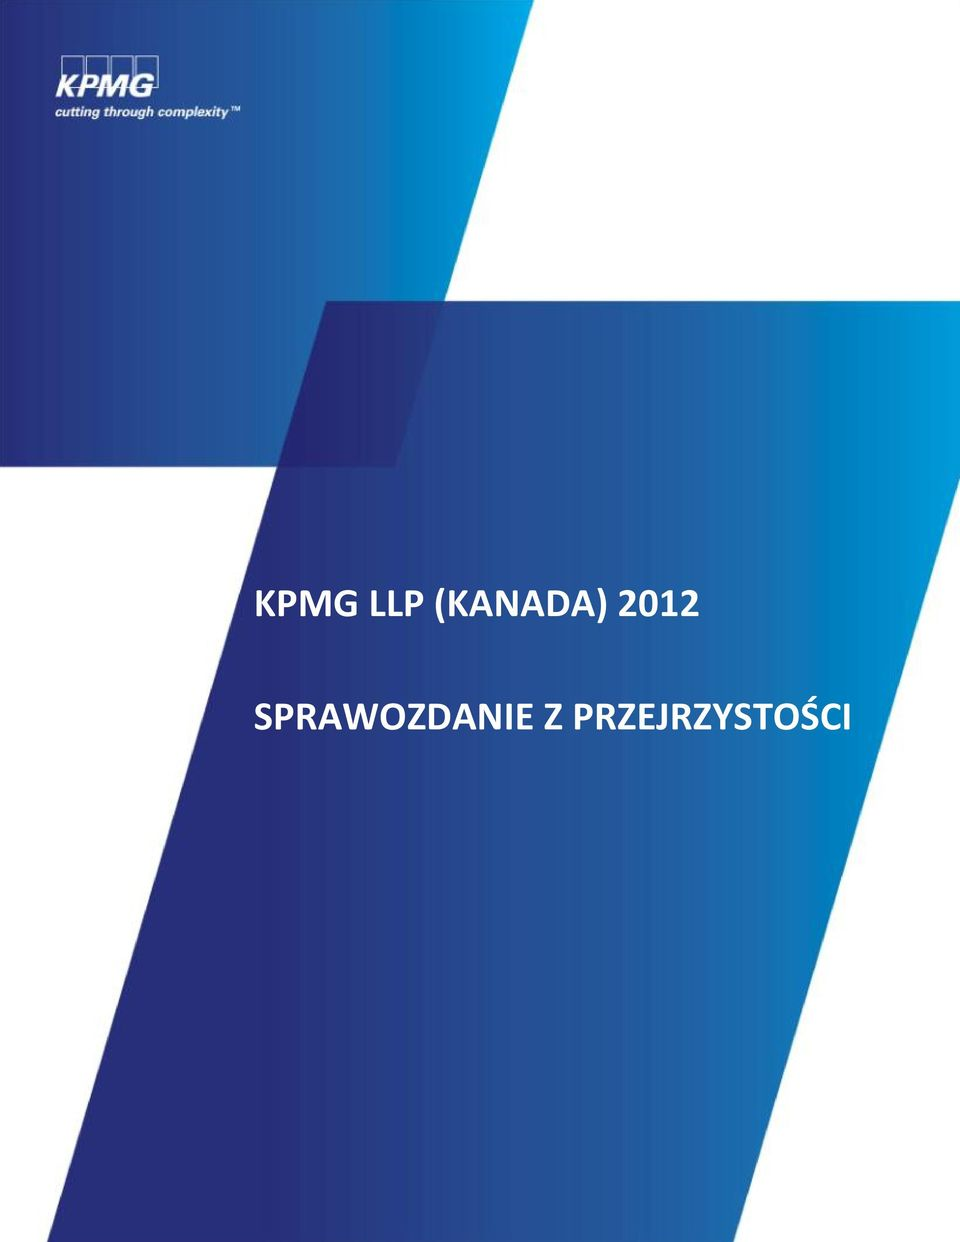 member firm of the KPMG network of independent member firms affiliated with